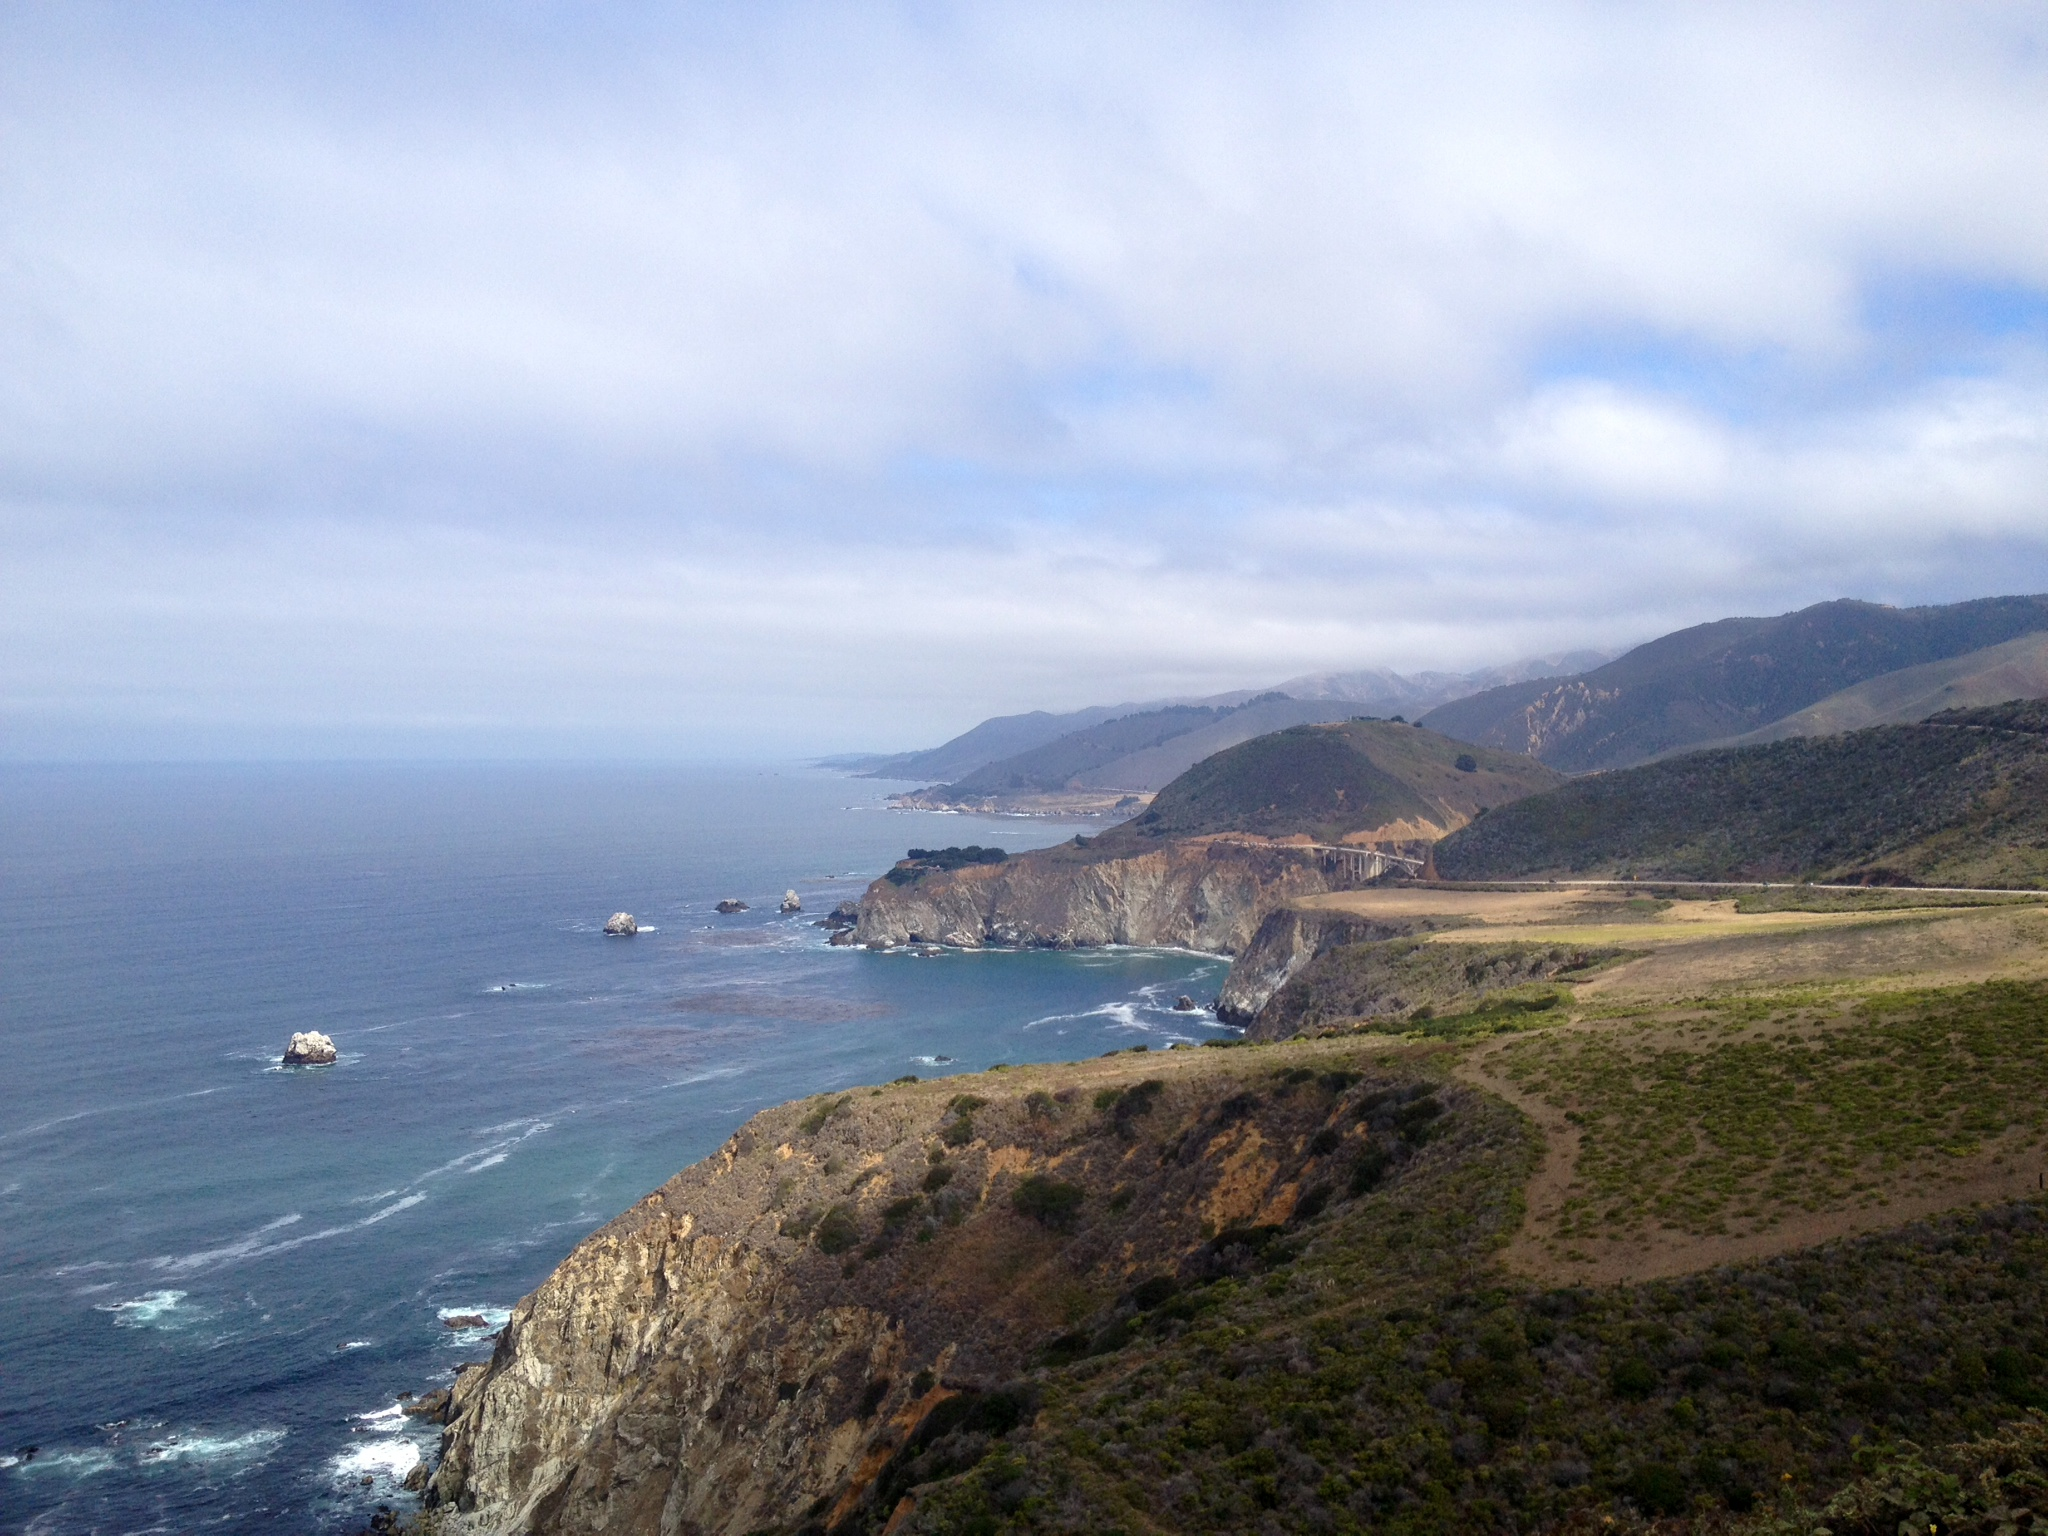 Coastline of Big Sur